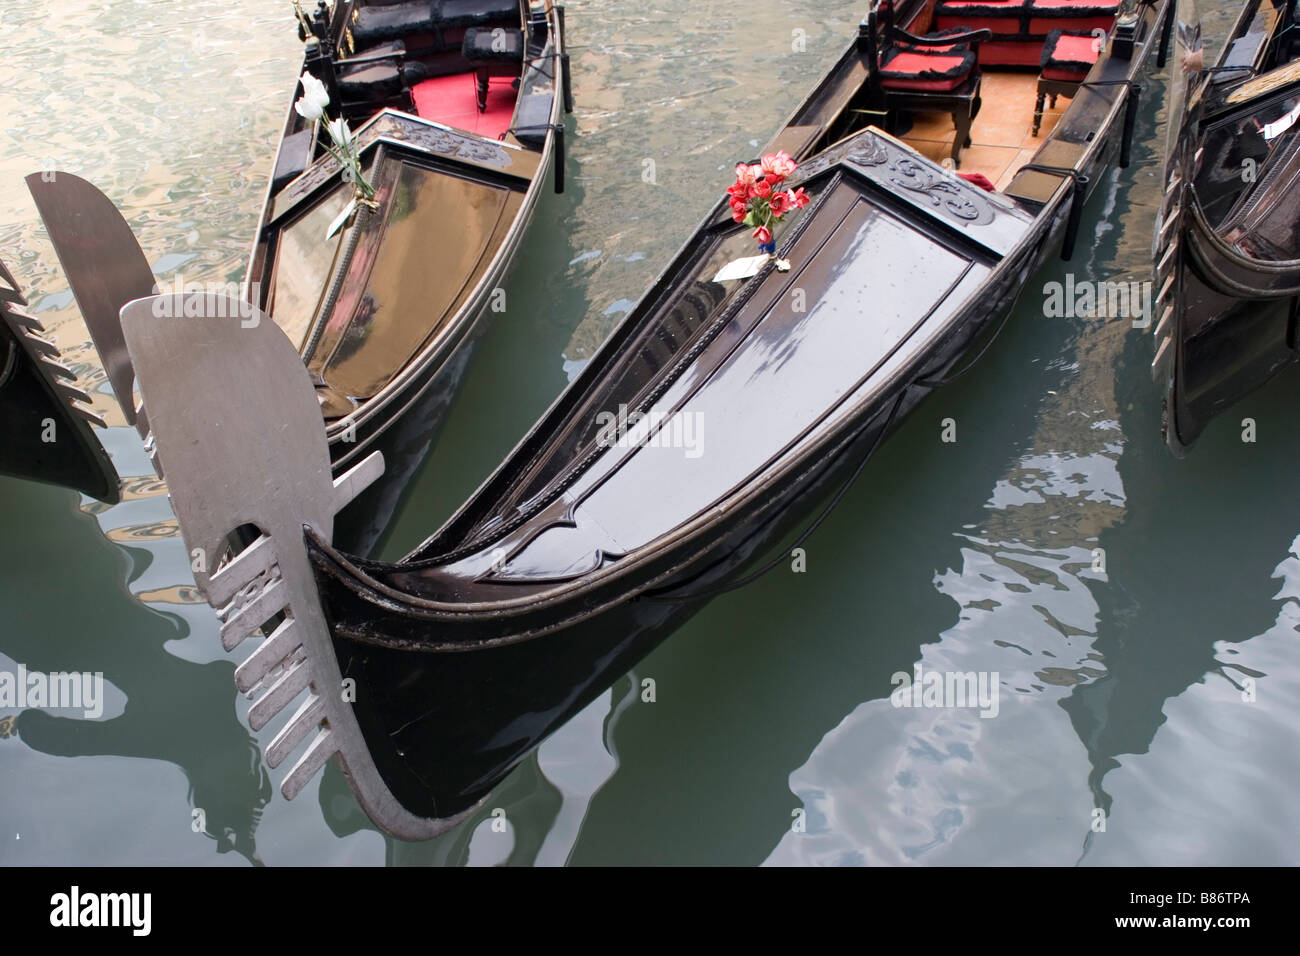 Venice Italy gondolas wait for passengers before gondoliers embark on tours of the city's famous canals. - Stock Image